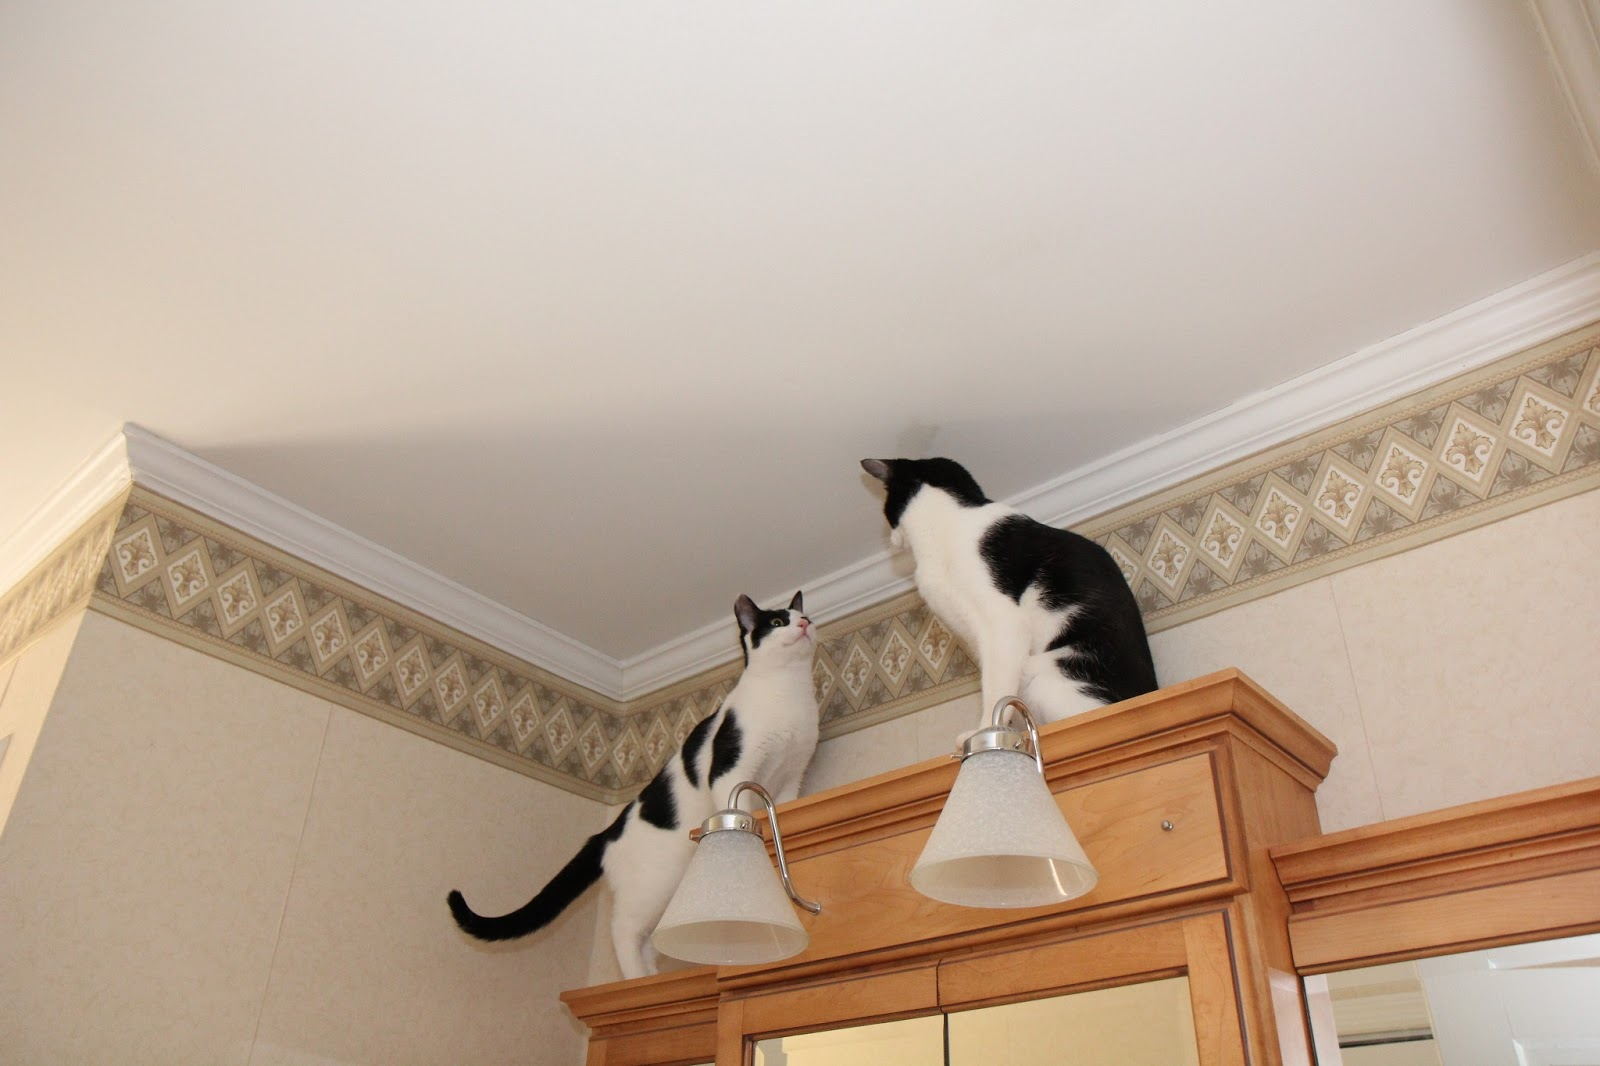 Two cats on top of the medicine cabinet